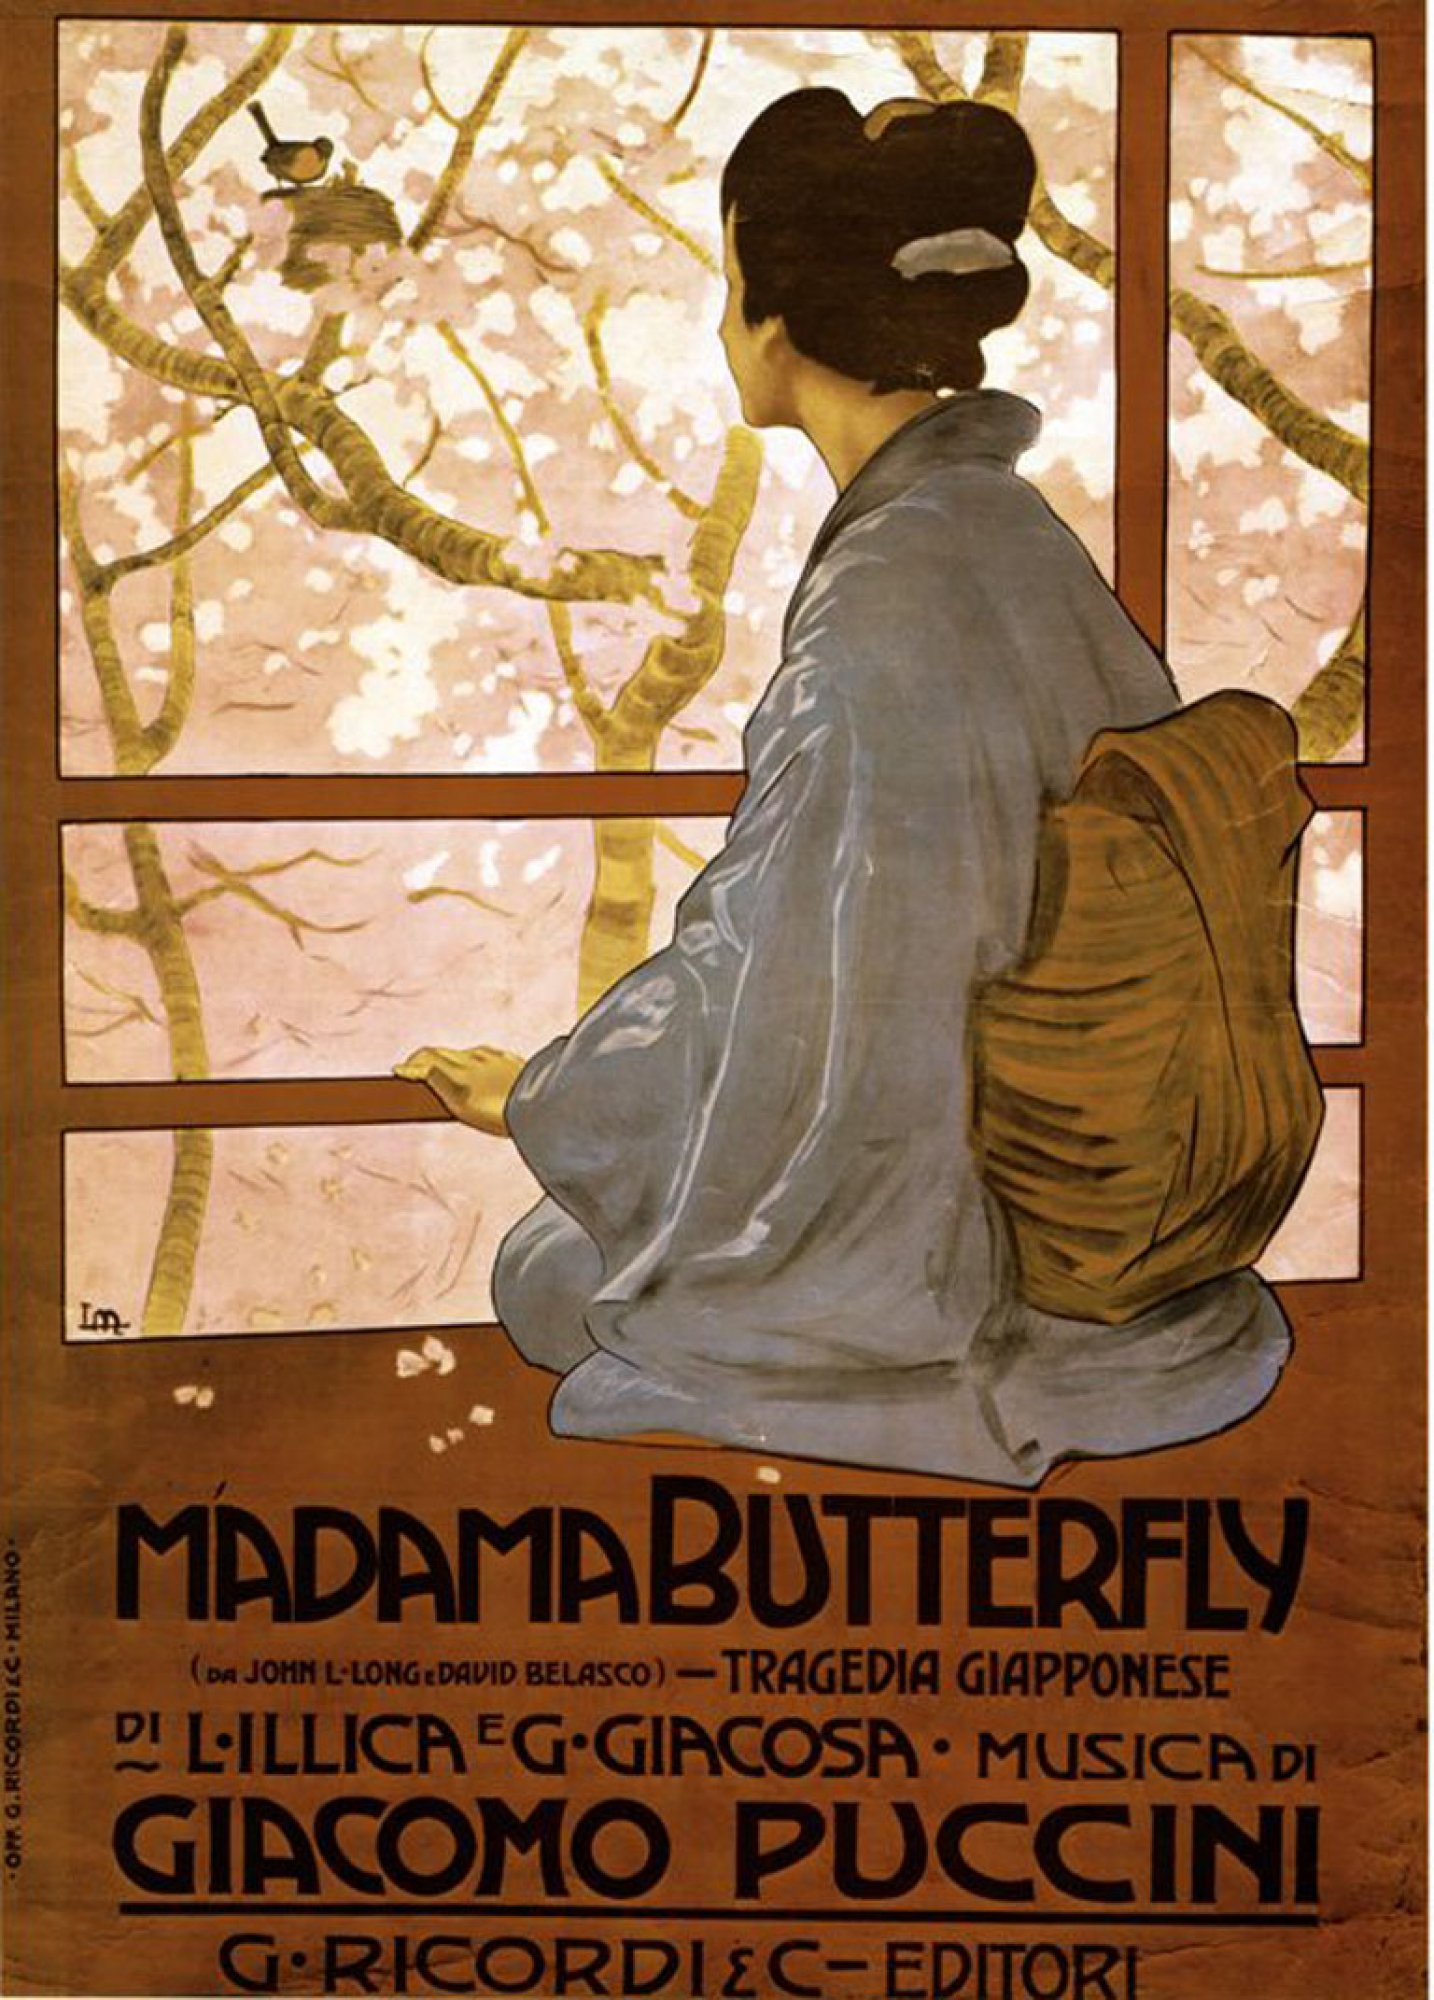 Madama Butterly by Giacomo Puccini - Versilia.org